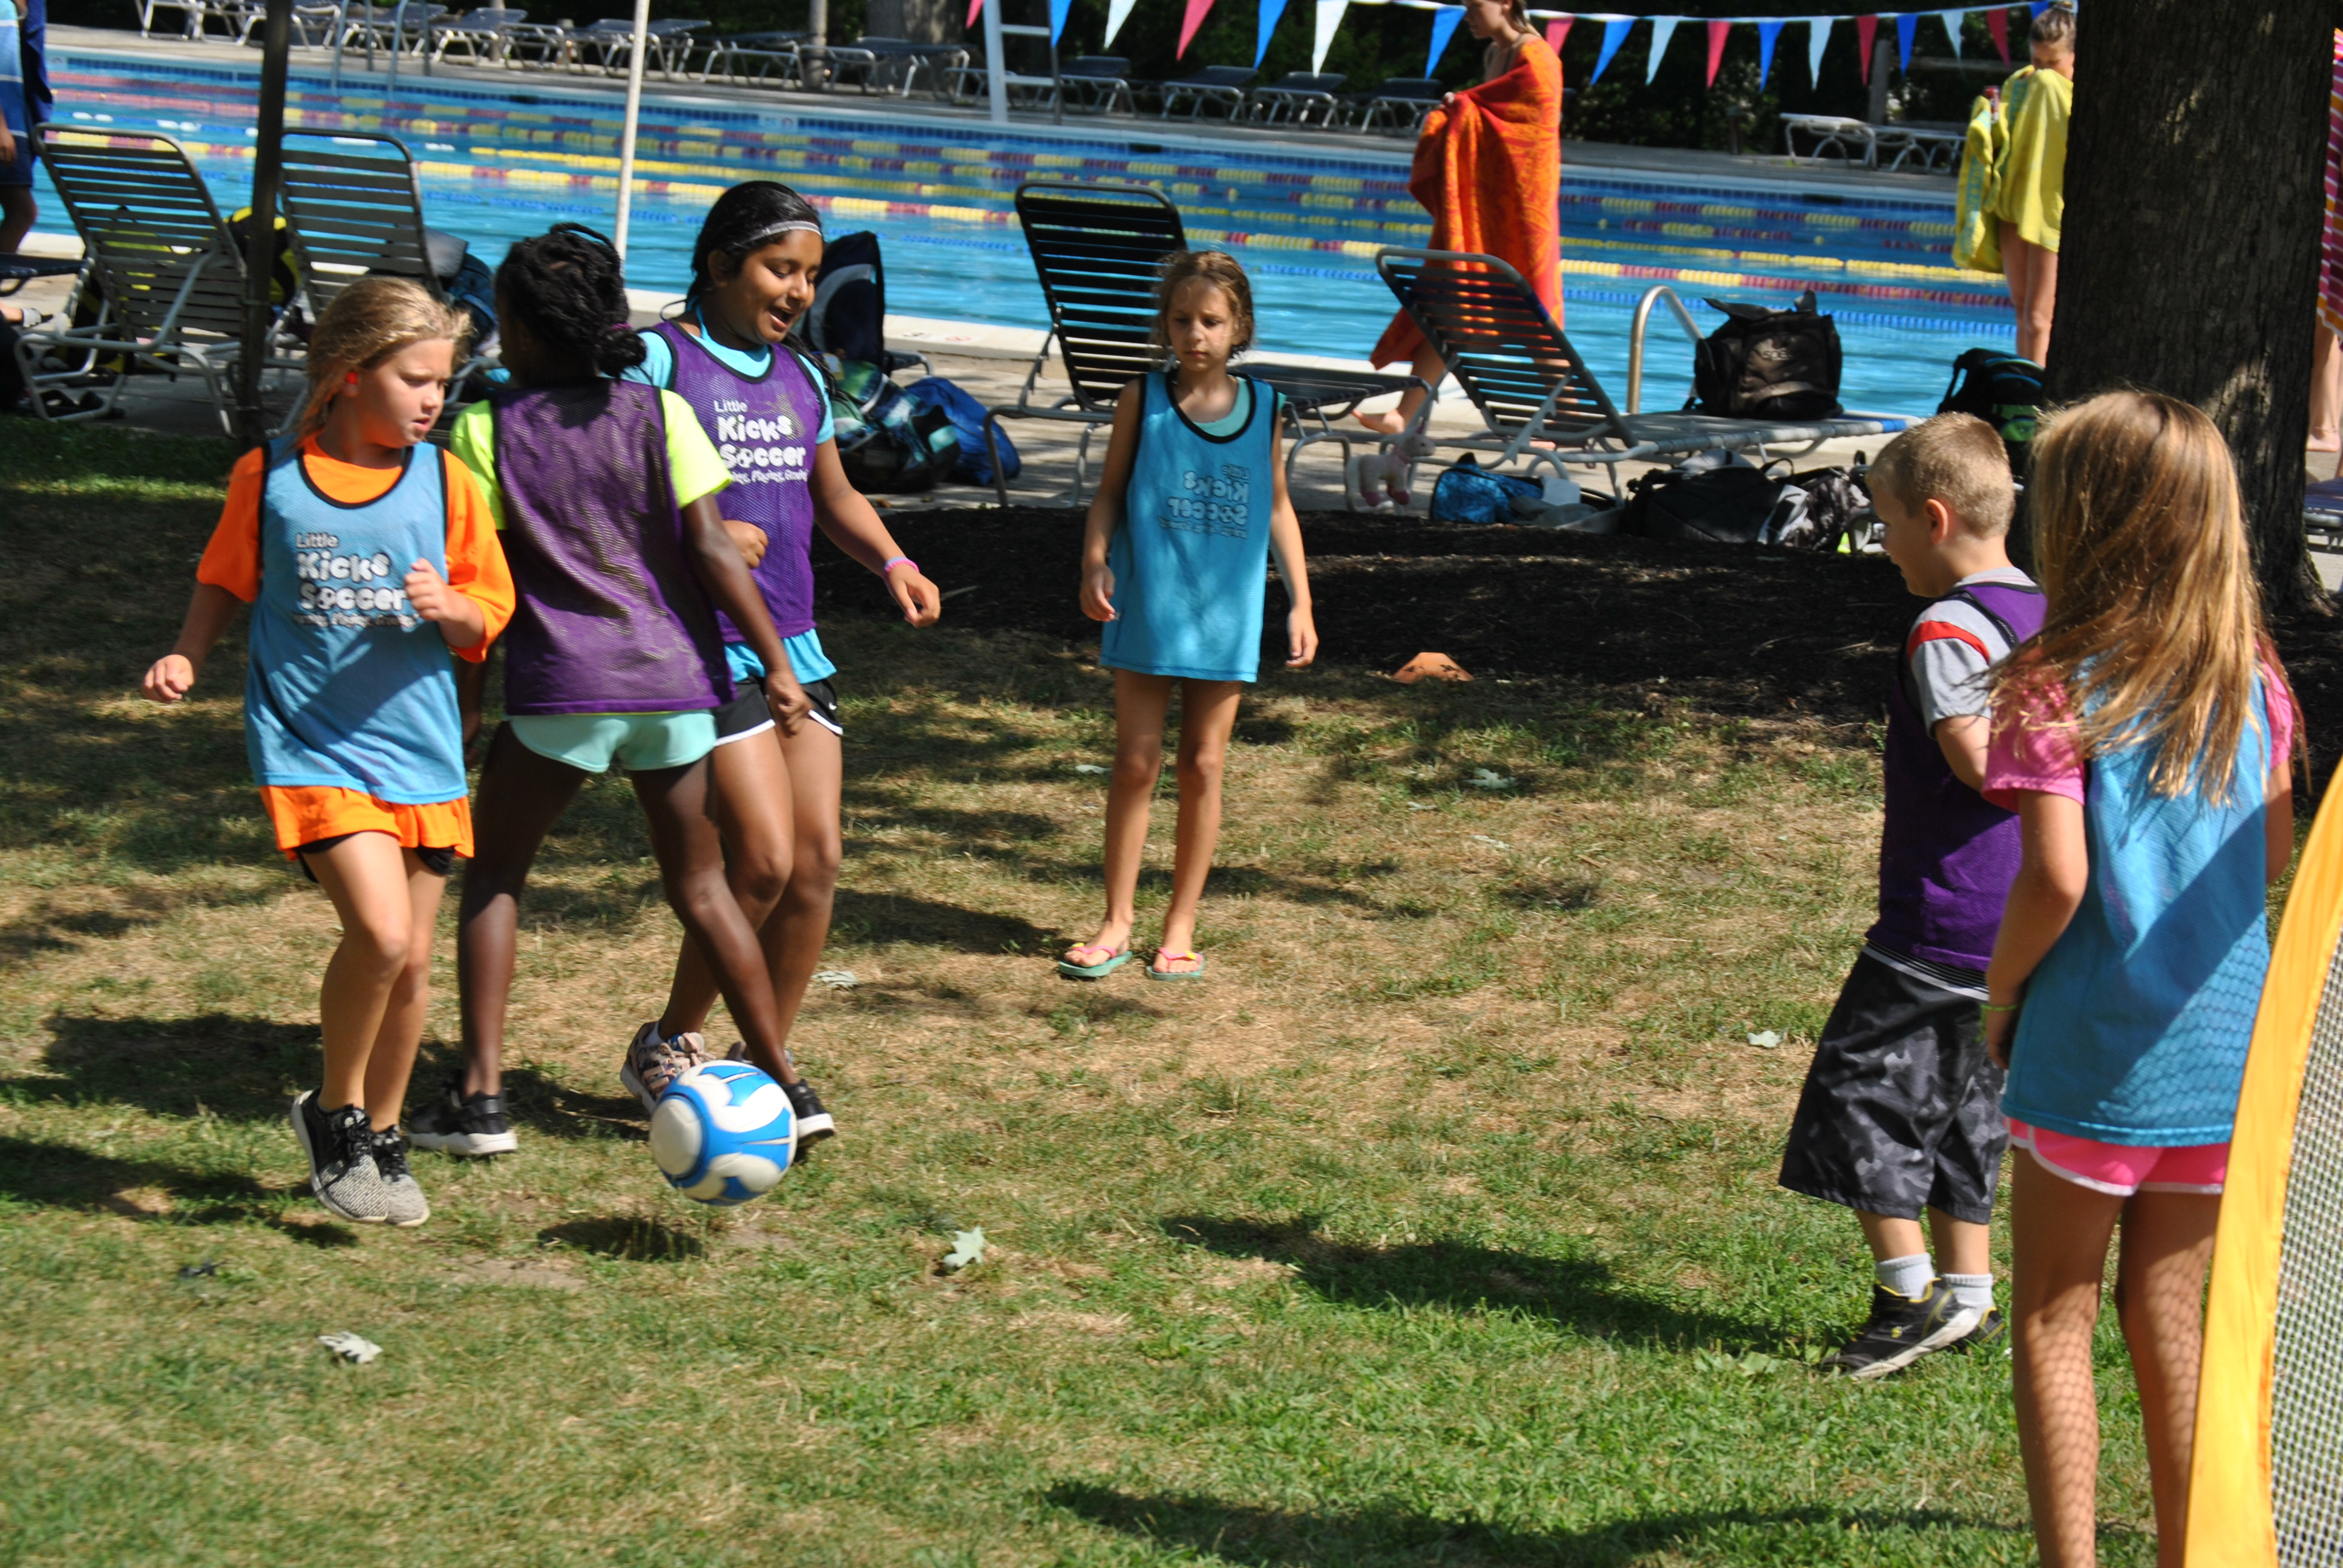 Chartwell's Happy Day Camp Marlton image 31